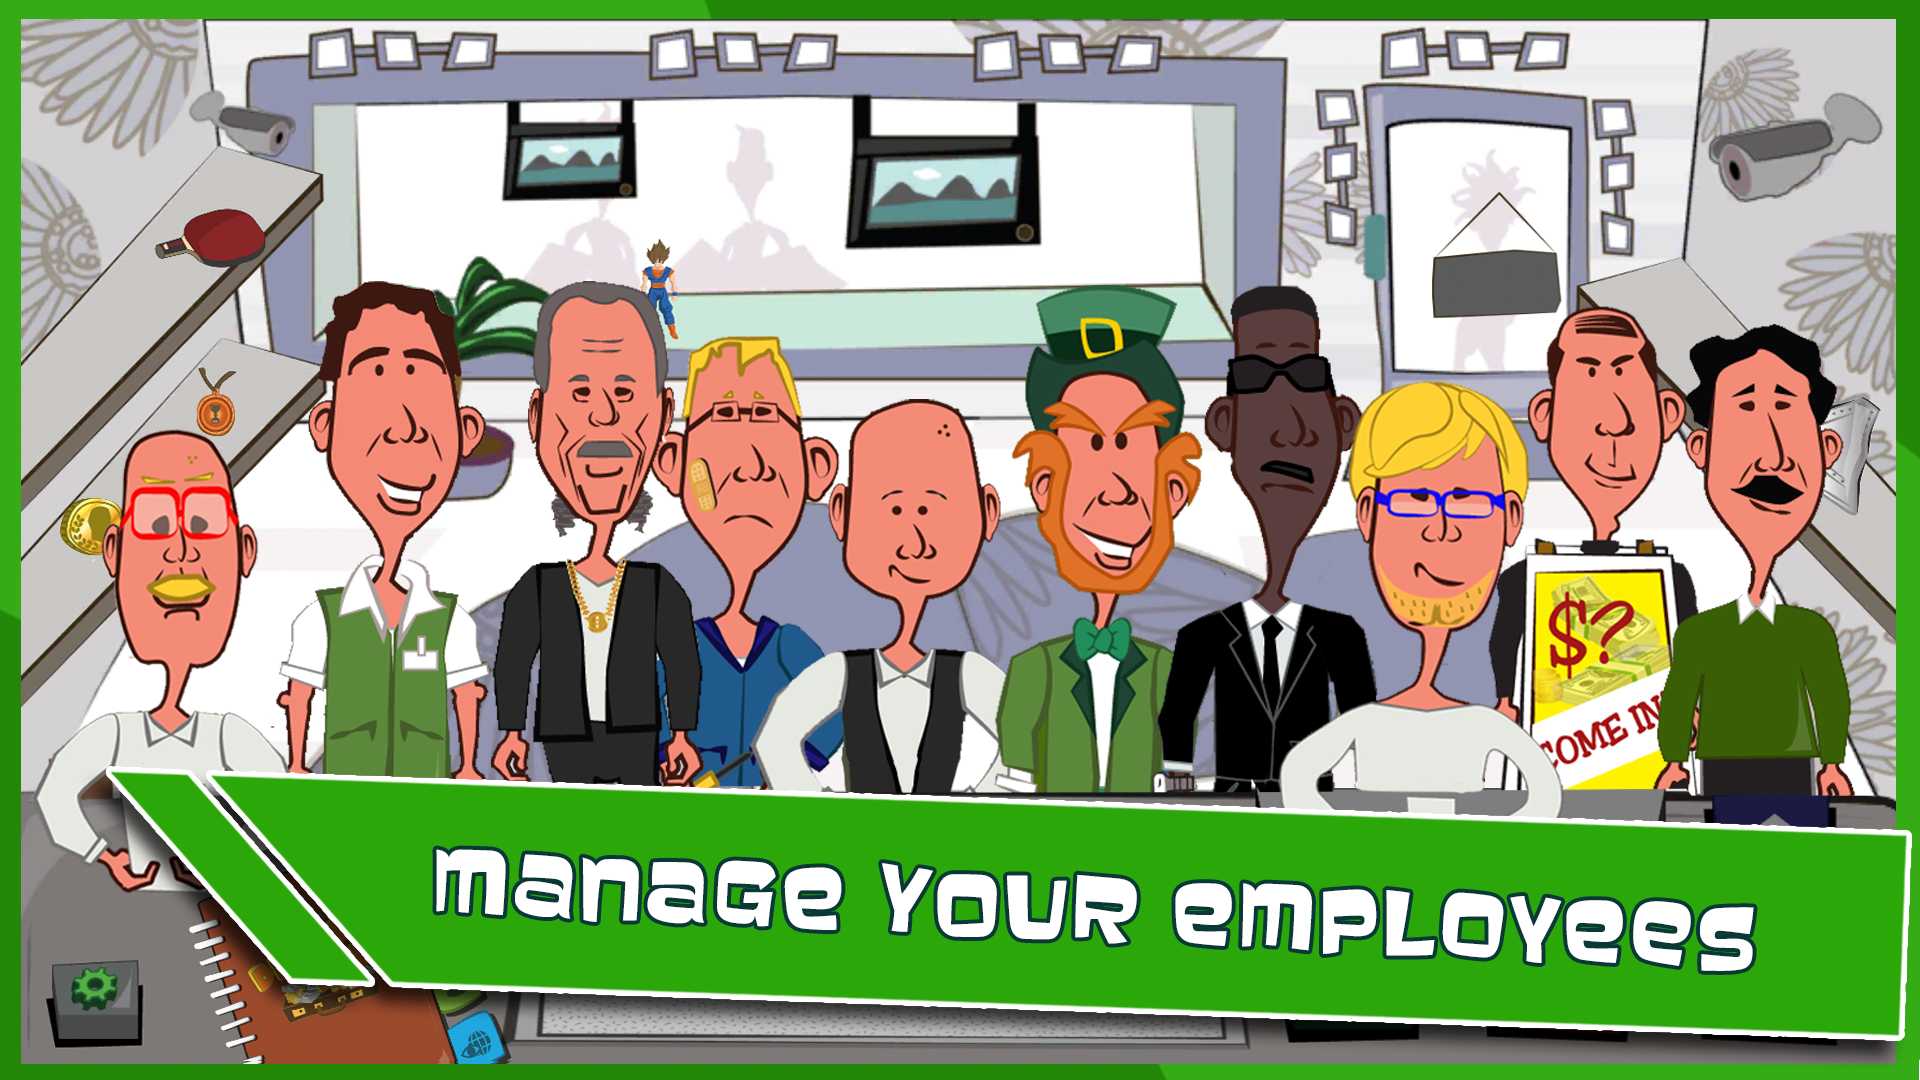 4_employees_en.png